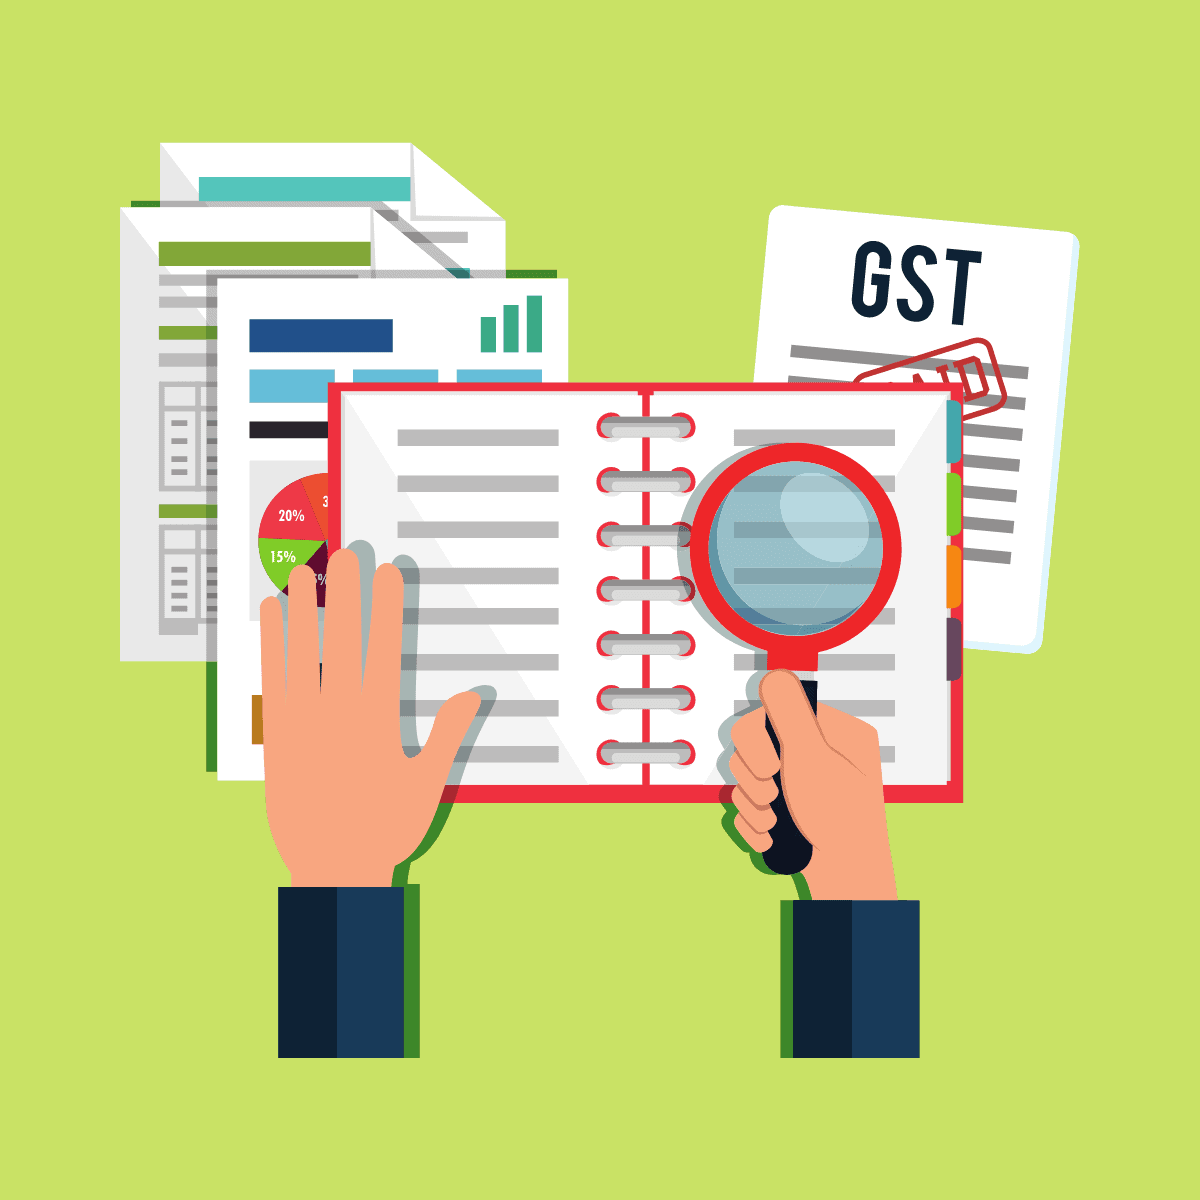 How to Apply For a GST Number?